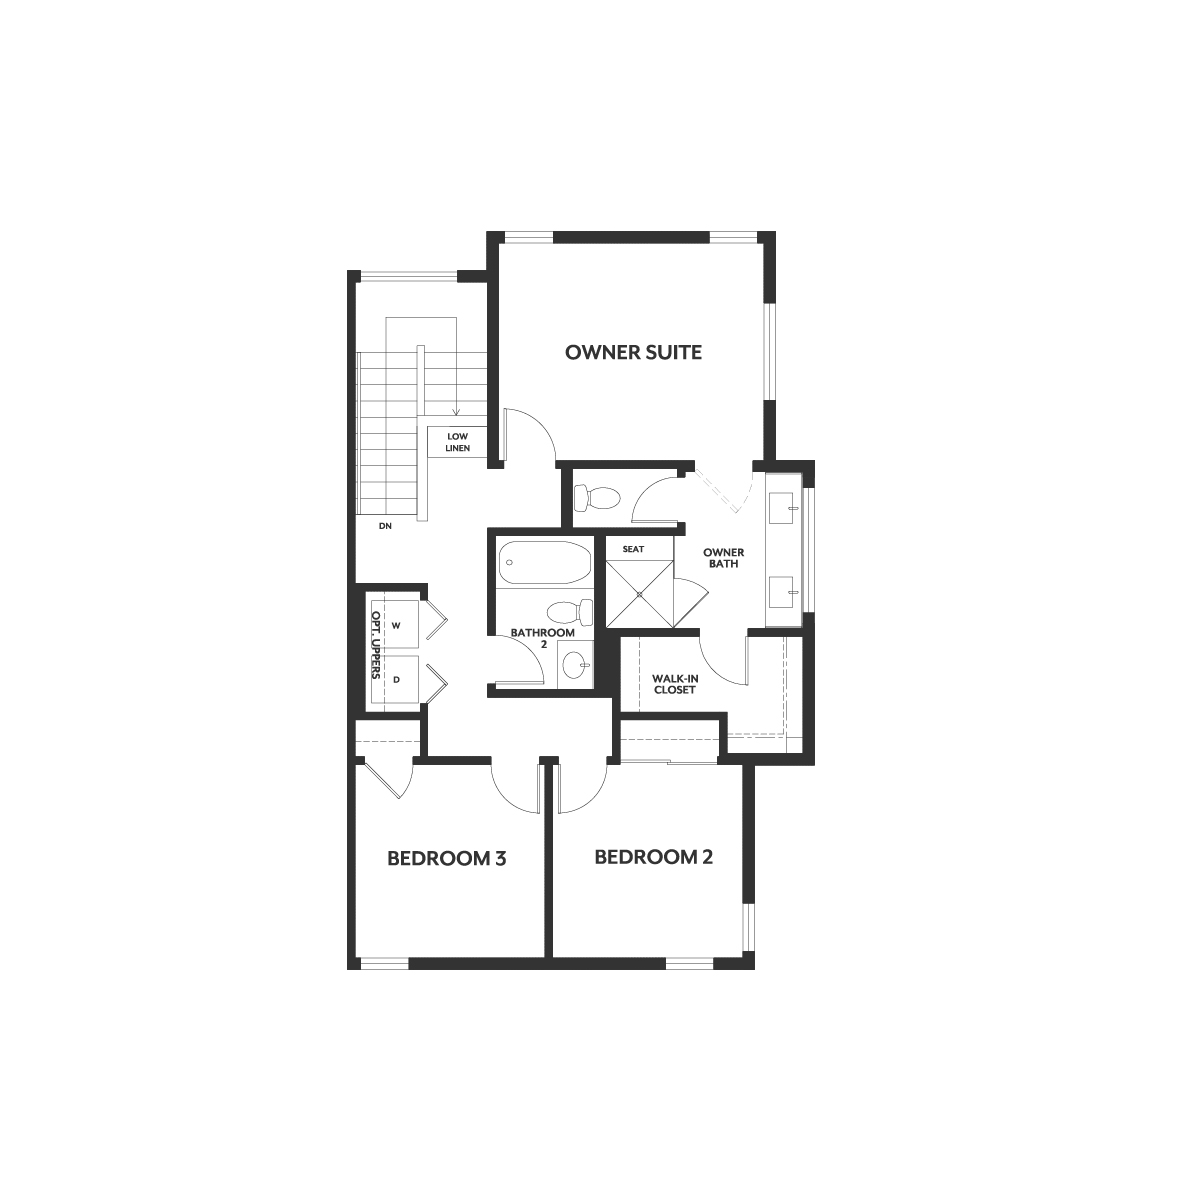 Residence 1 floor 3 plan | Wilshire at Boulevard in Dublin, CA | Brookfield Residential